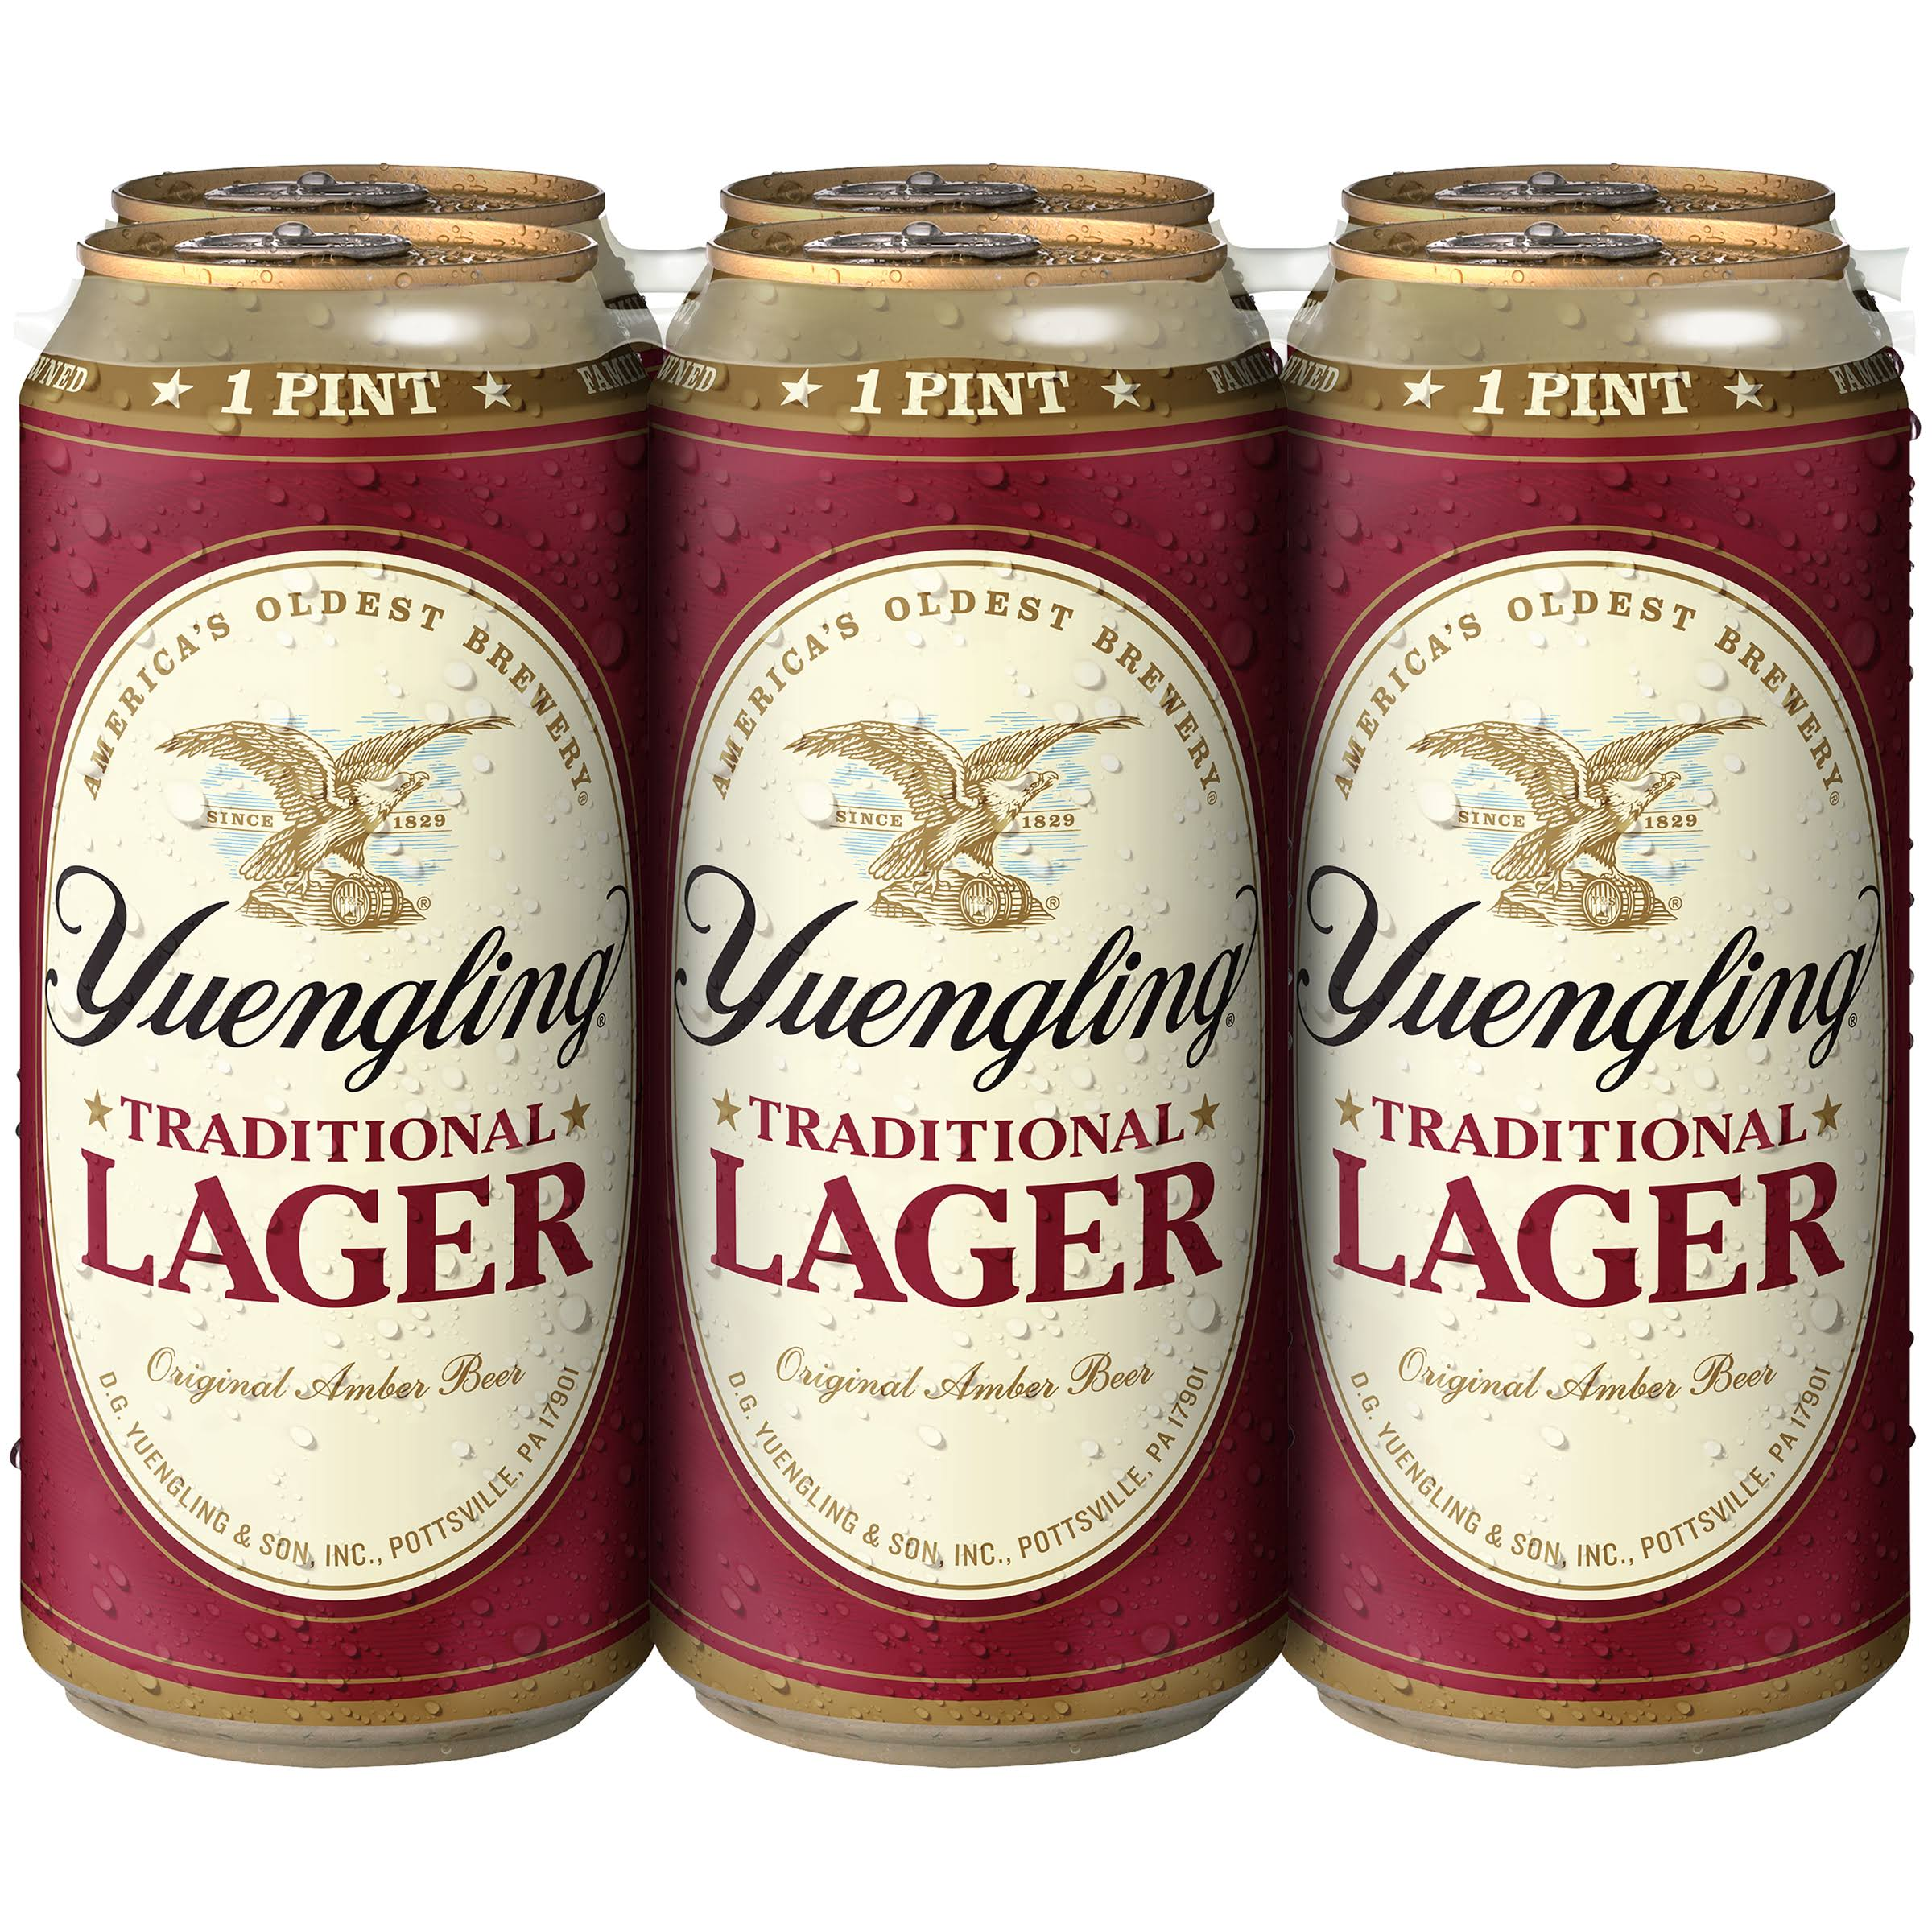 Yuengling Traditional Beer - 16oz, 6 Pack